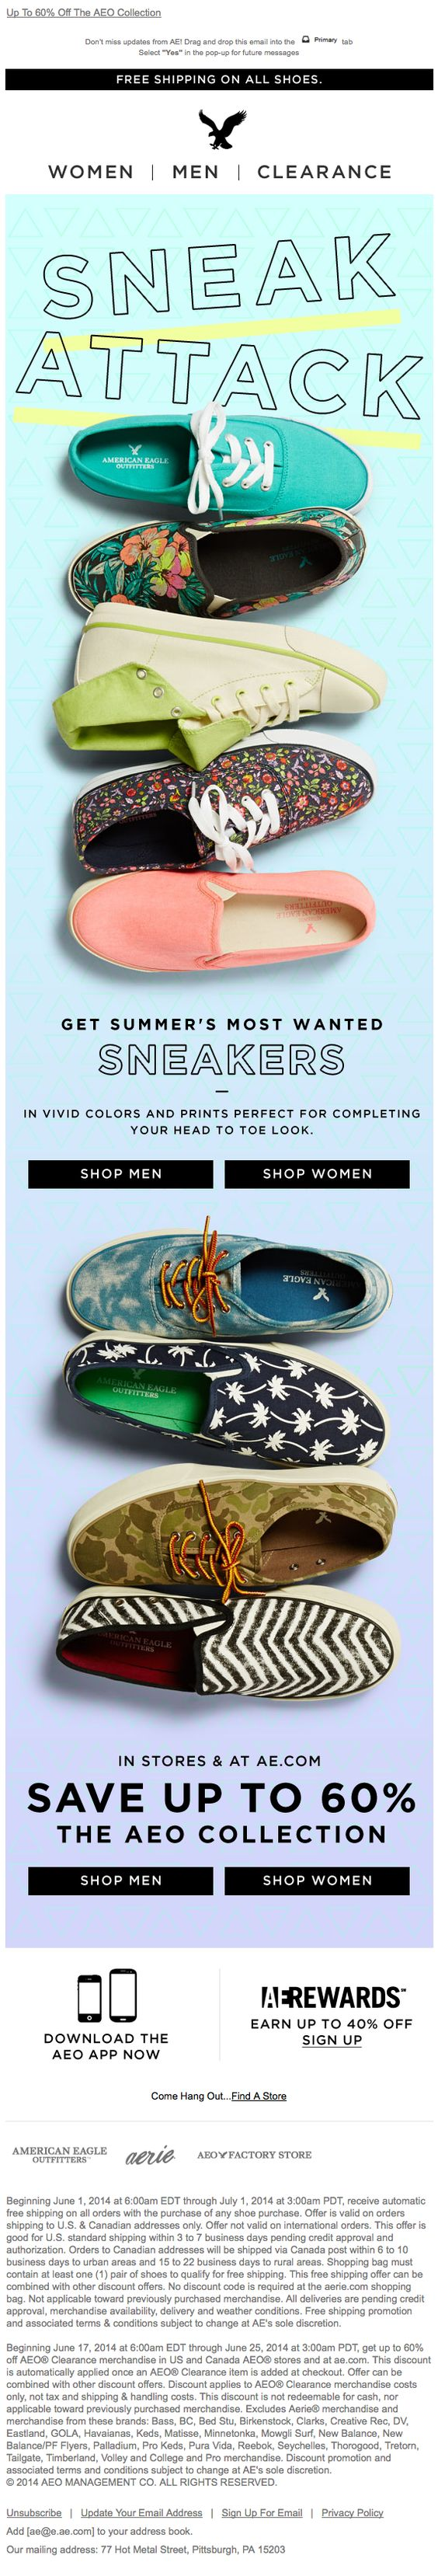 American Eagle Outfitters | newsletter | fashion email | fashion design | email | email marketing | email inspiration | e-mail